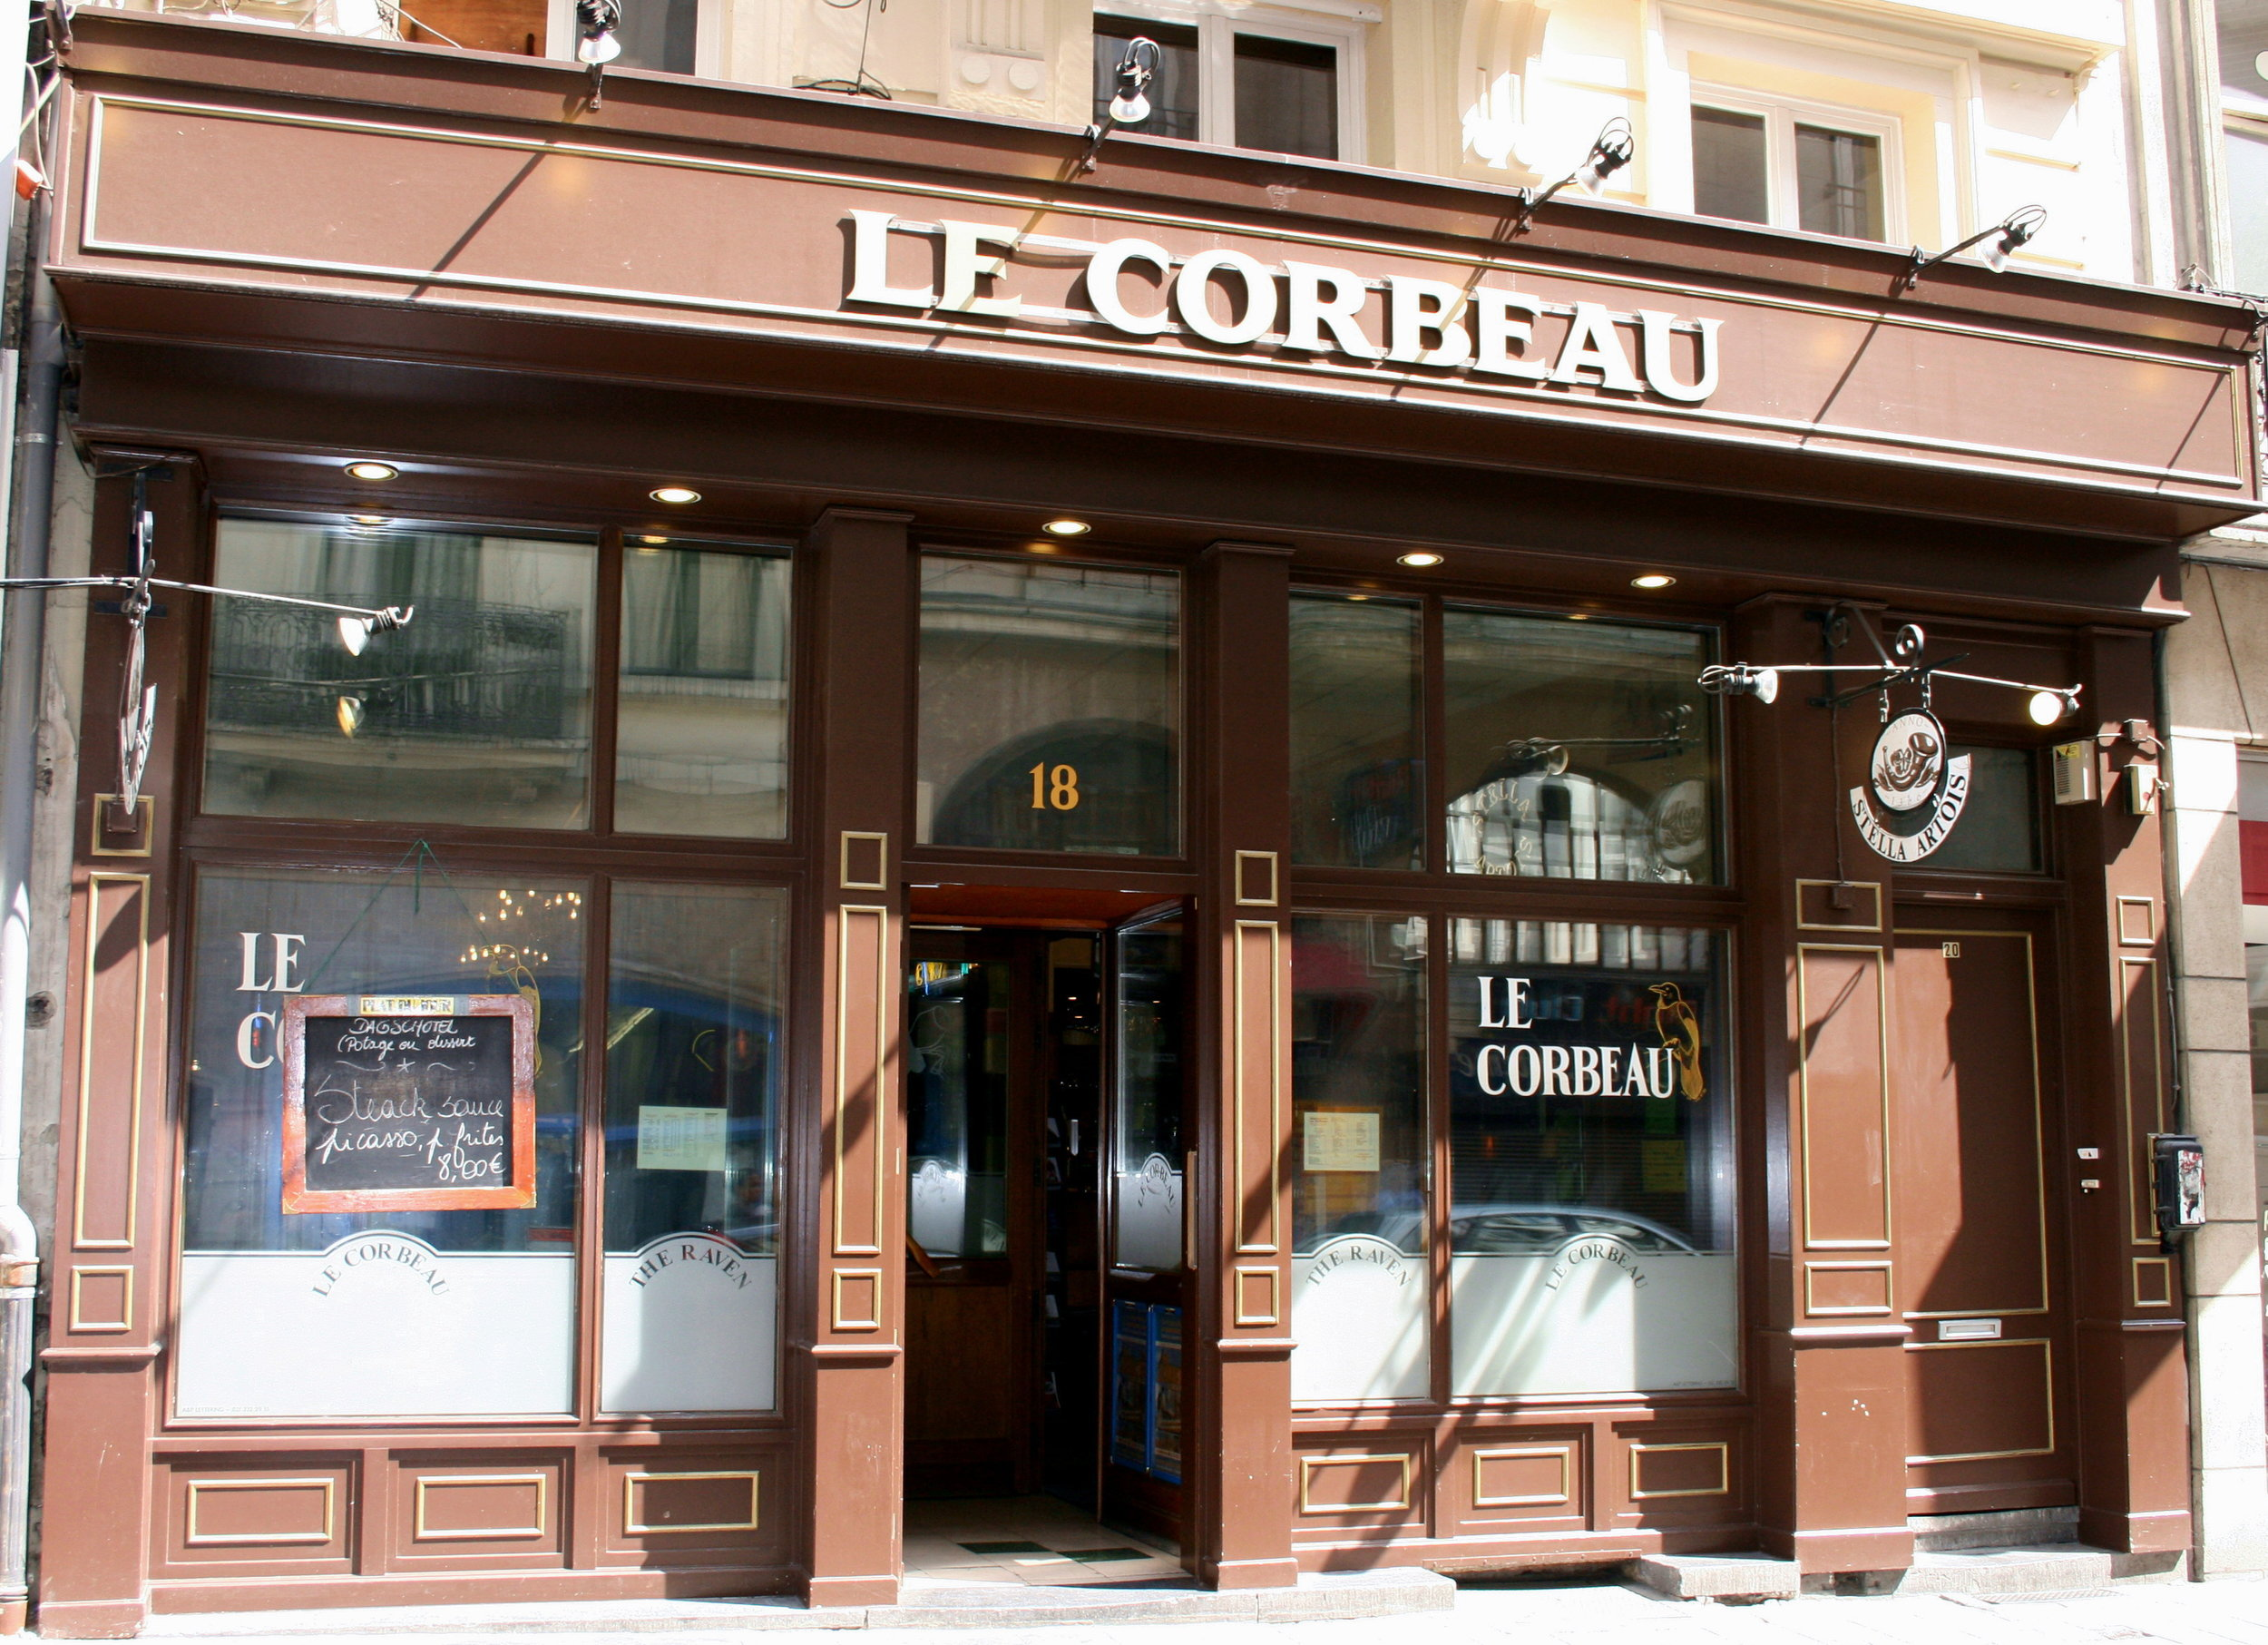 LE CORBEAU   http://www.lecorbeau.be     Unassuming from outside (difficult to find), really nice Belgian food (serve lunch till 2.30) and decent beer list (look out for the BIG glasses!) during day but at night they do live music/DJ and EVERYONE dances on tables, all ages and all types... it is great fun once you get into it. Also worth noting how, at night, the bar works with one person taking all orders and one other doing all drinks.